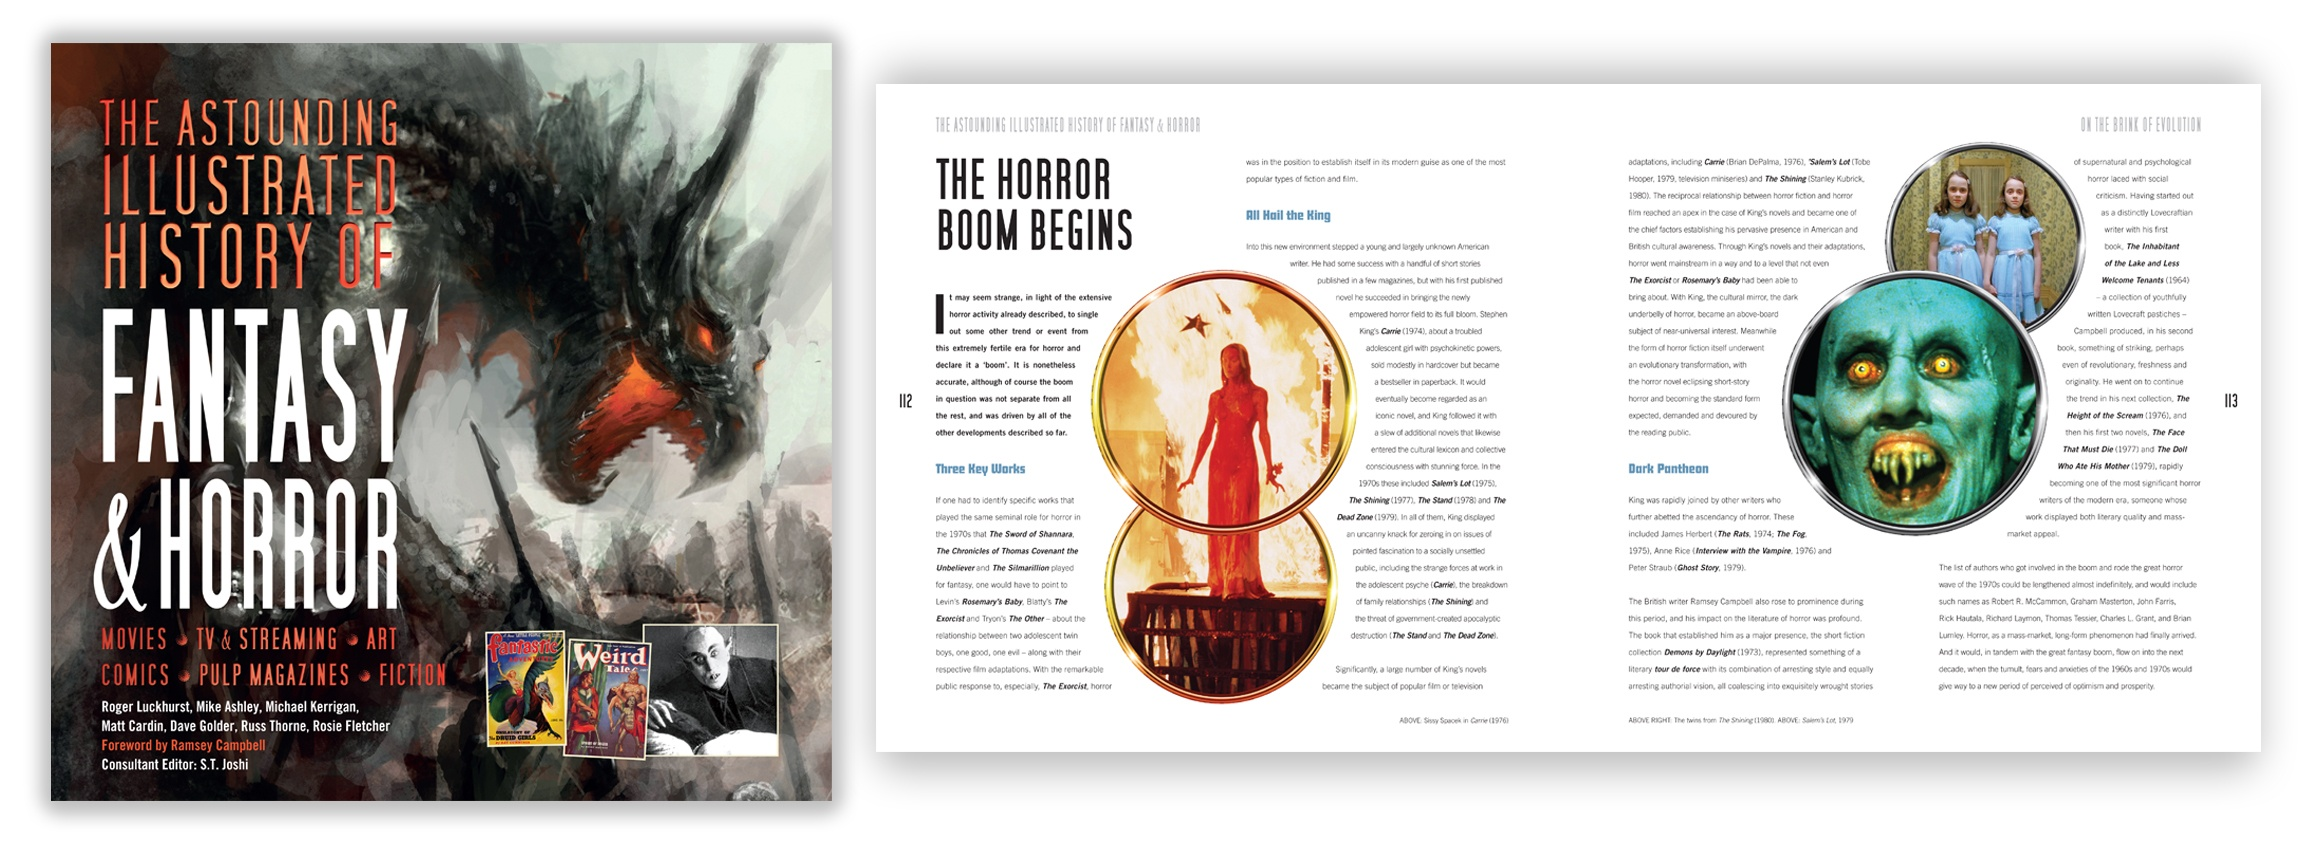 Illustrated history of horror w- Spread